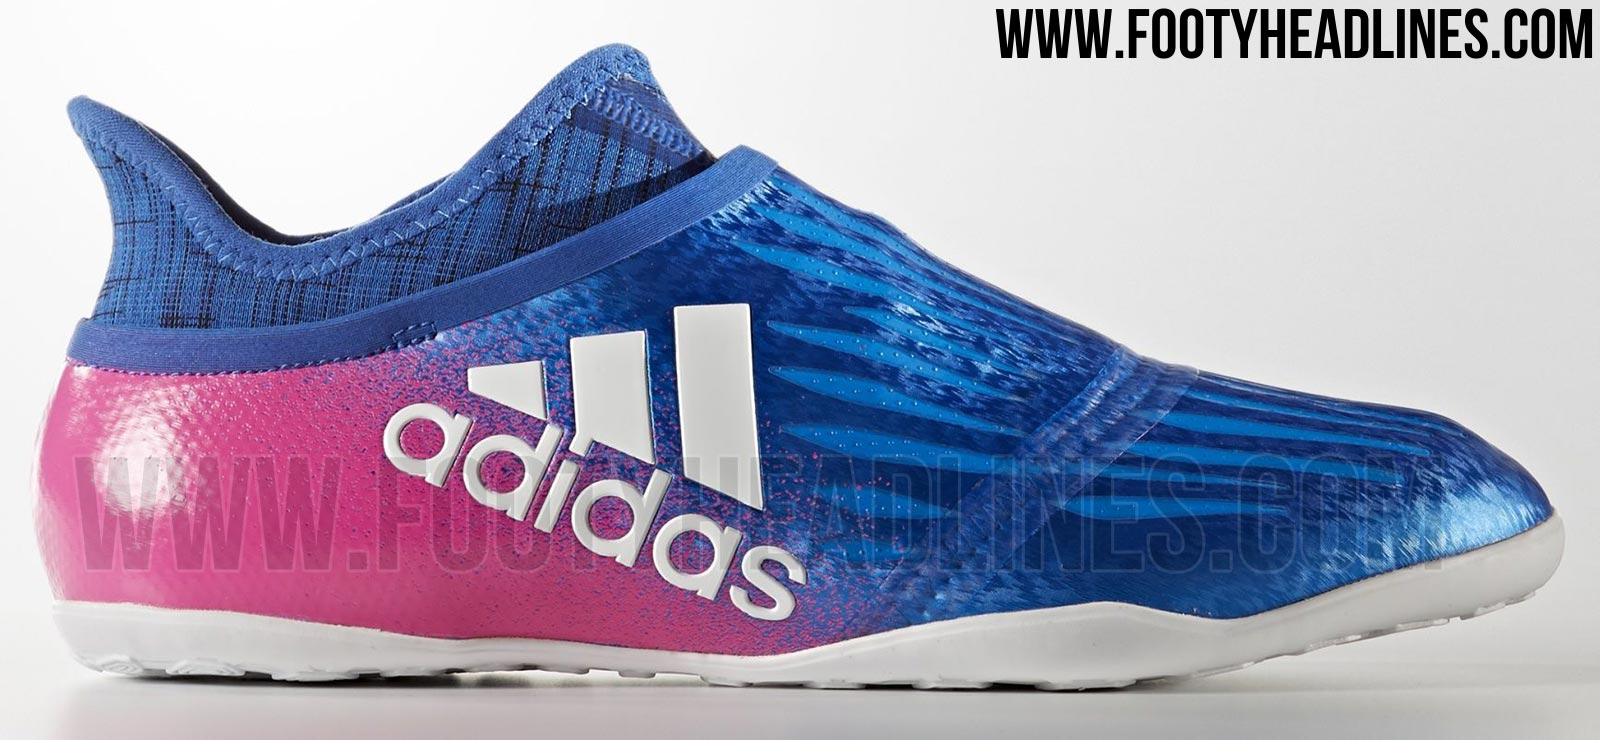 insane blue blast adidas x 16 purechaos indoor and turf. Black Bedroom Furniture Sets. Home Design Ideas